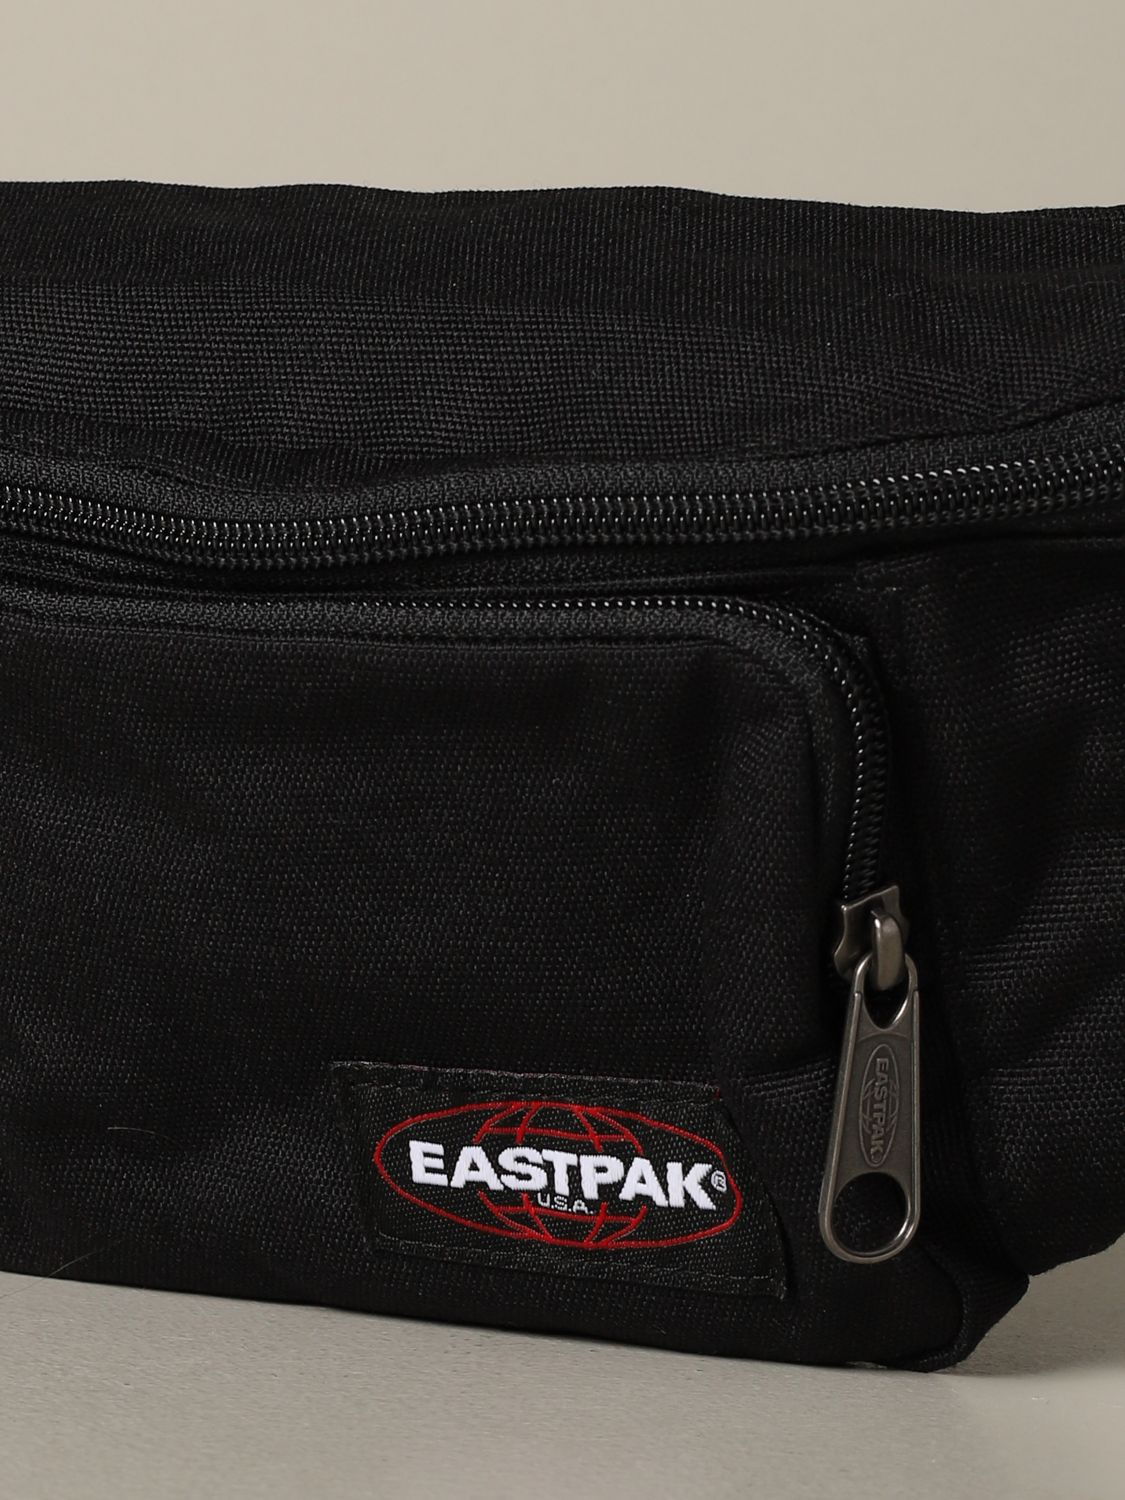 Belt bag Eastpak: Bags men Eastpak black 3